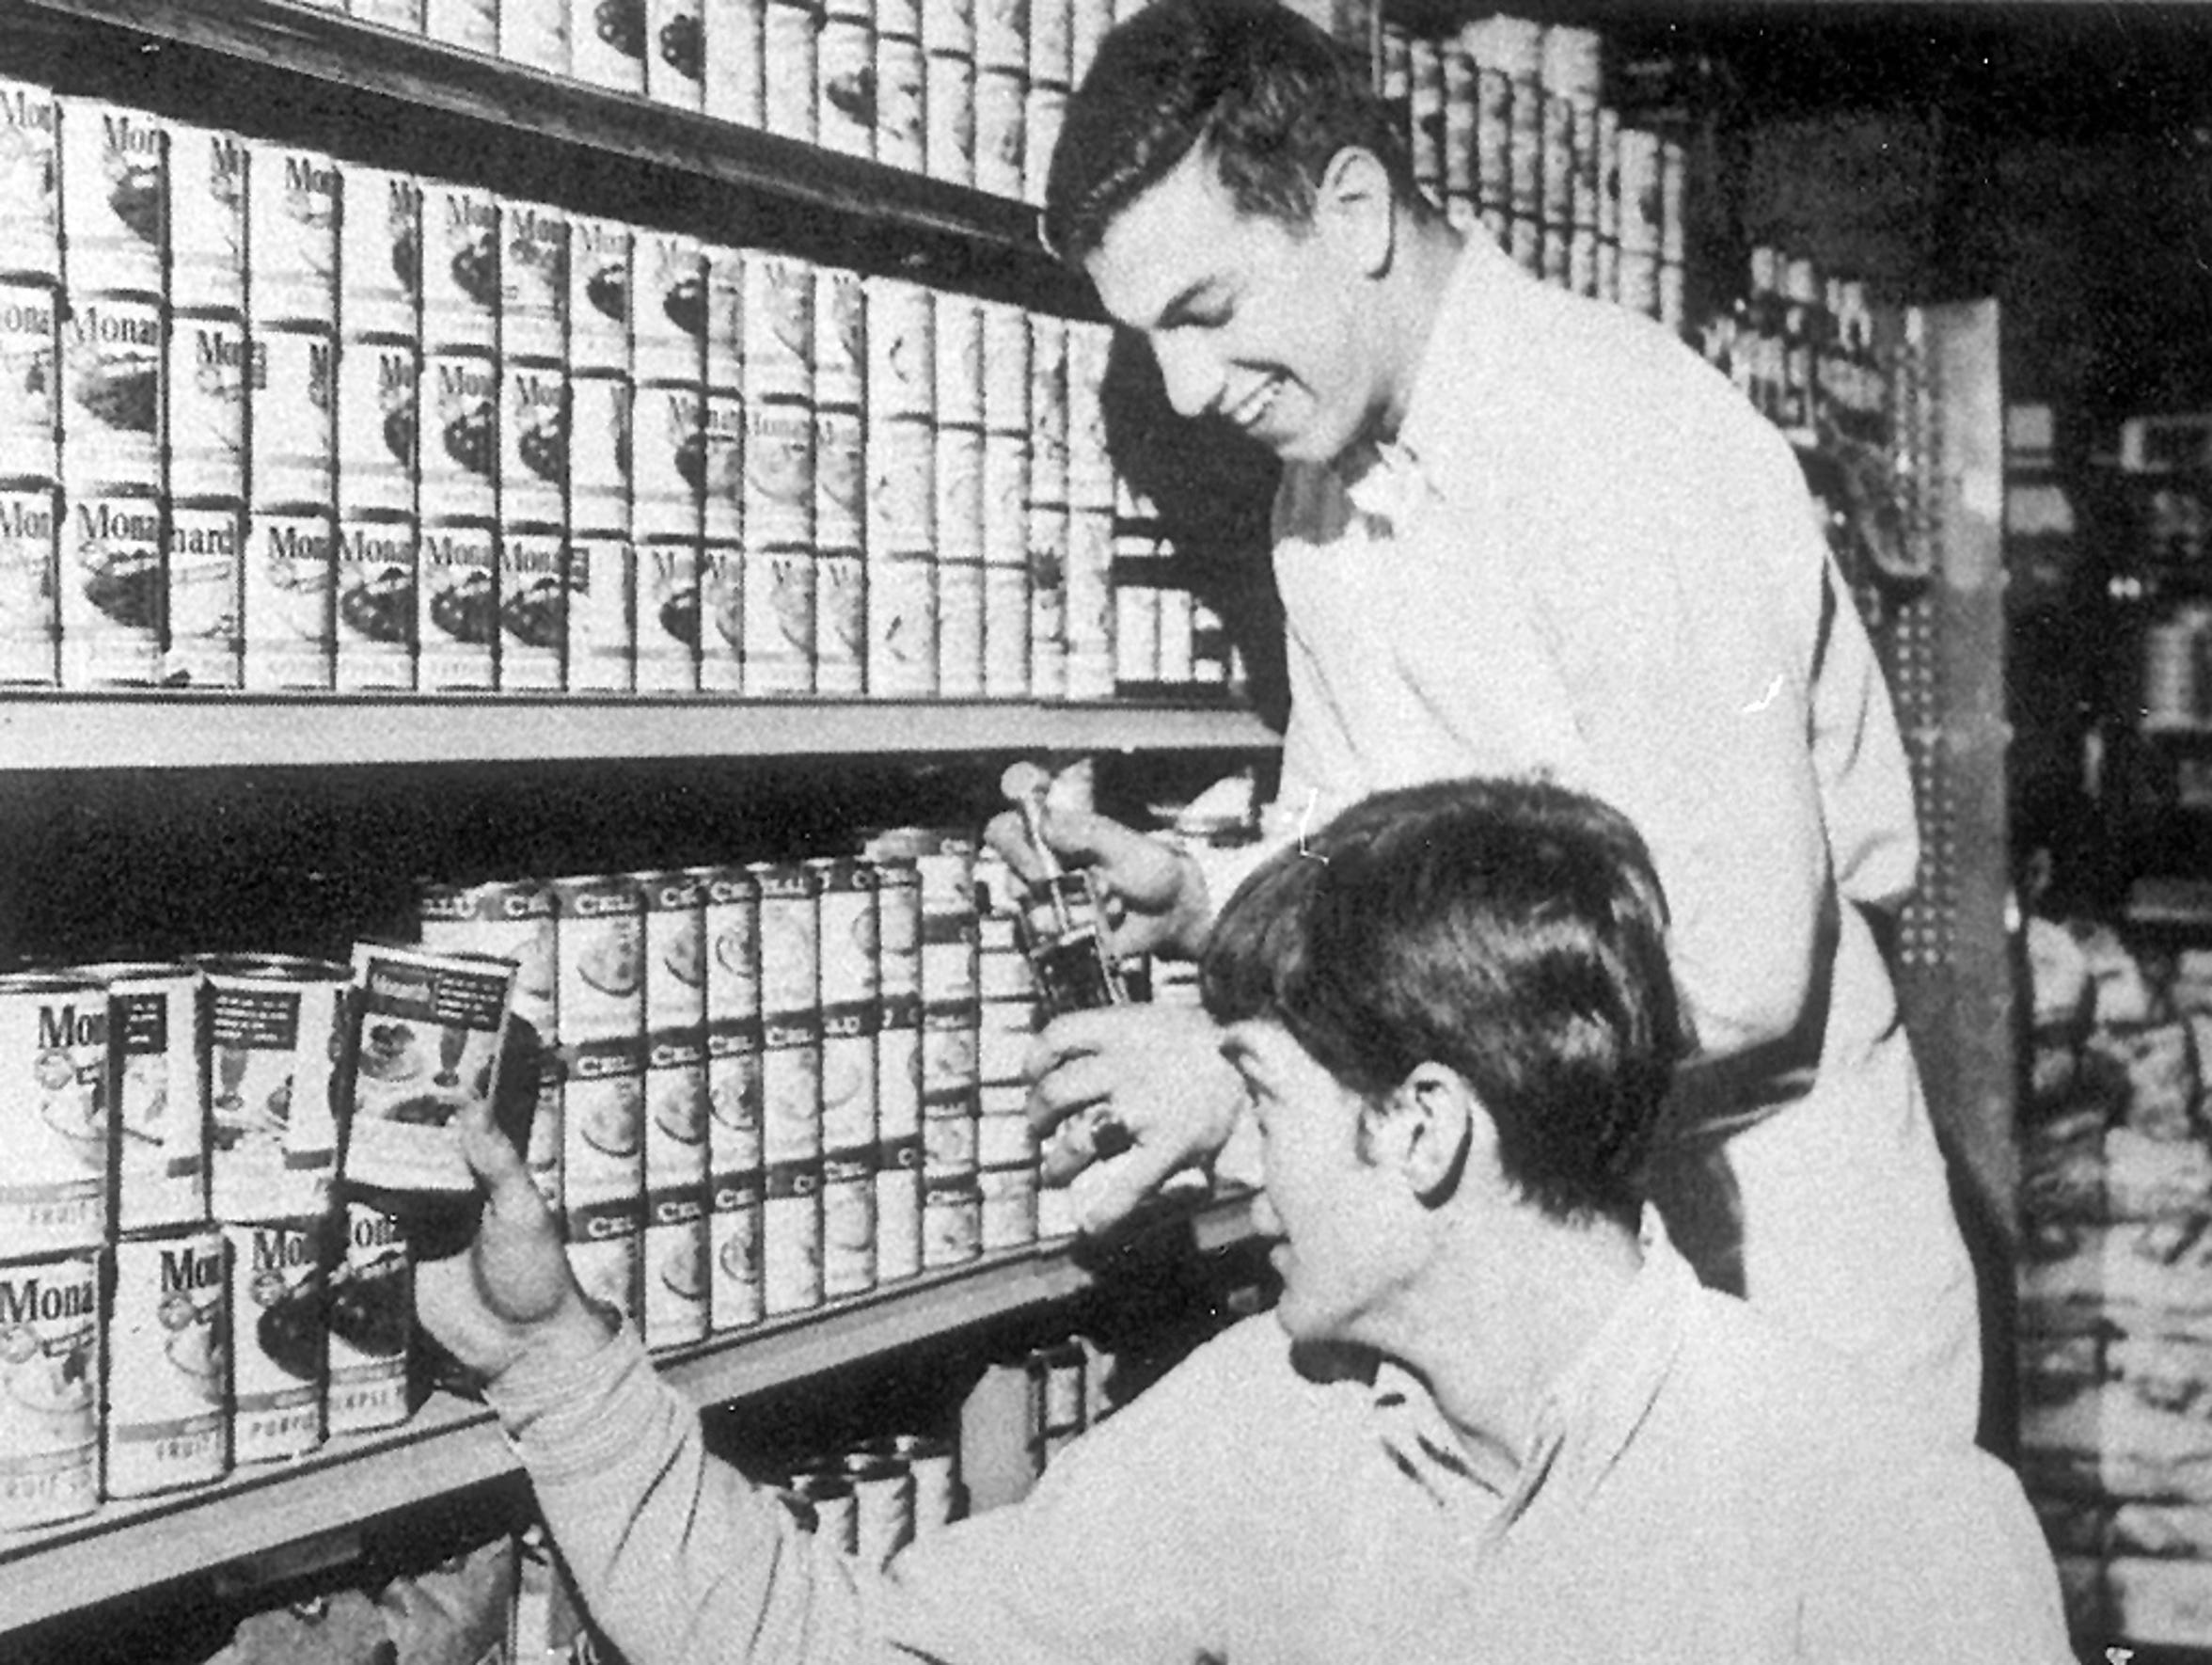 A young David Letterman works at Atlas Supermarket